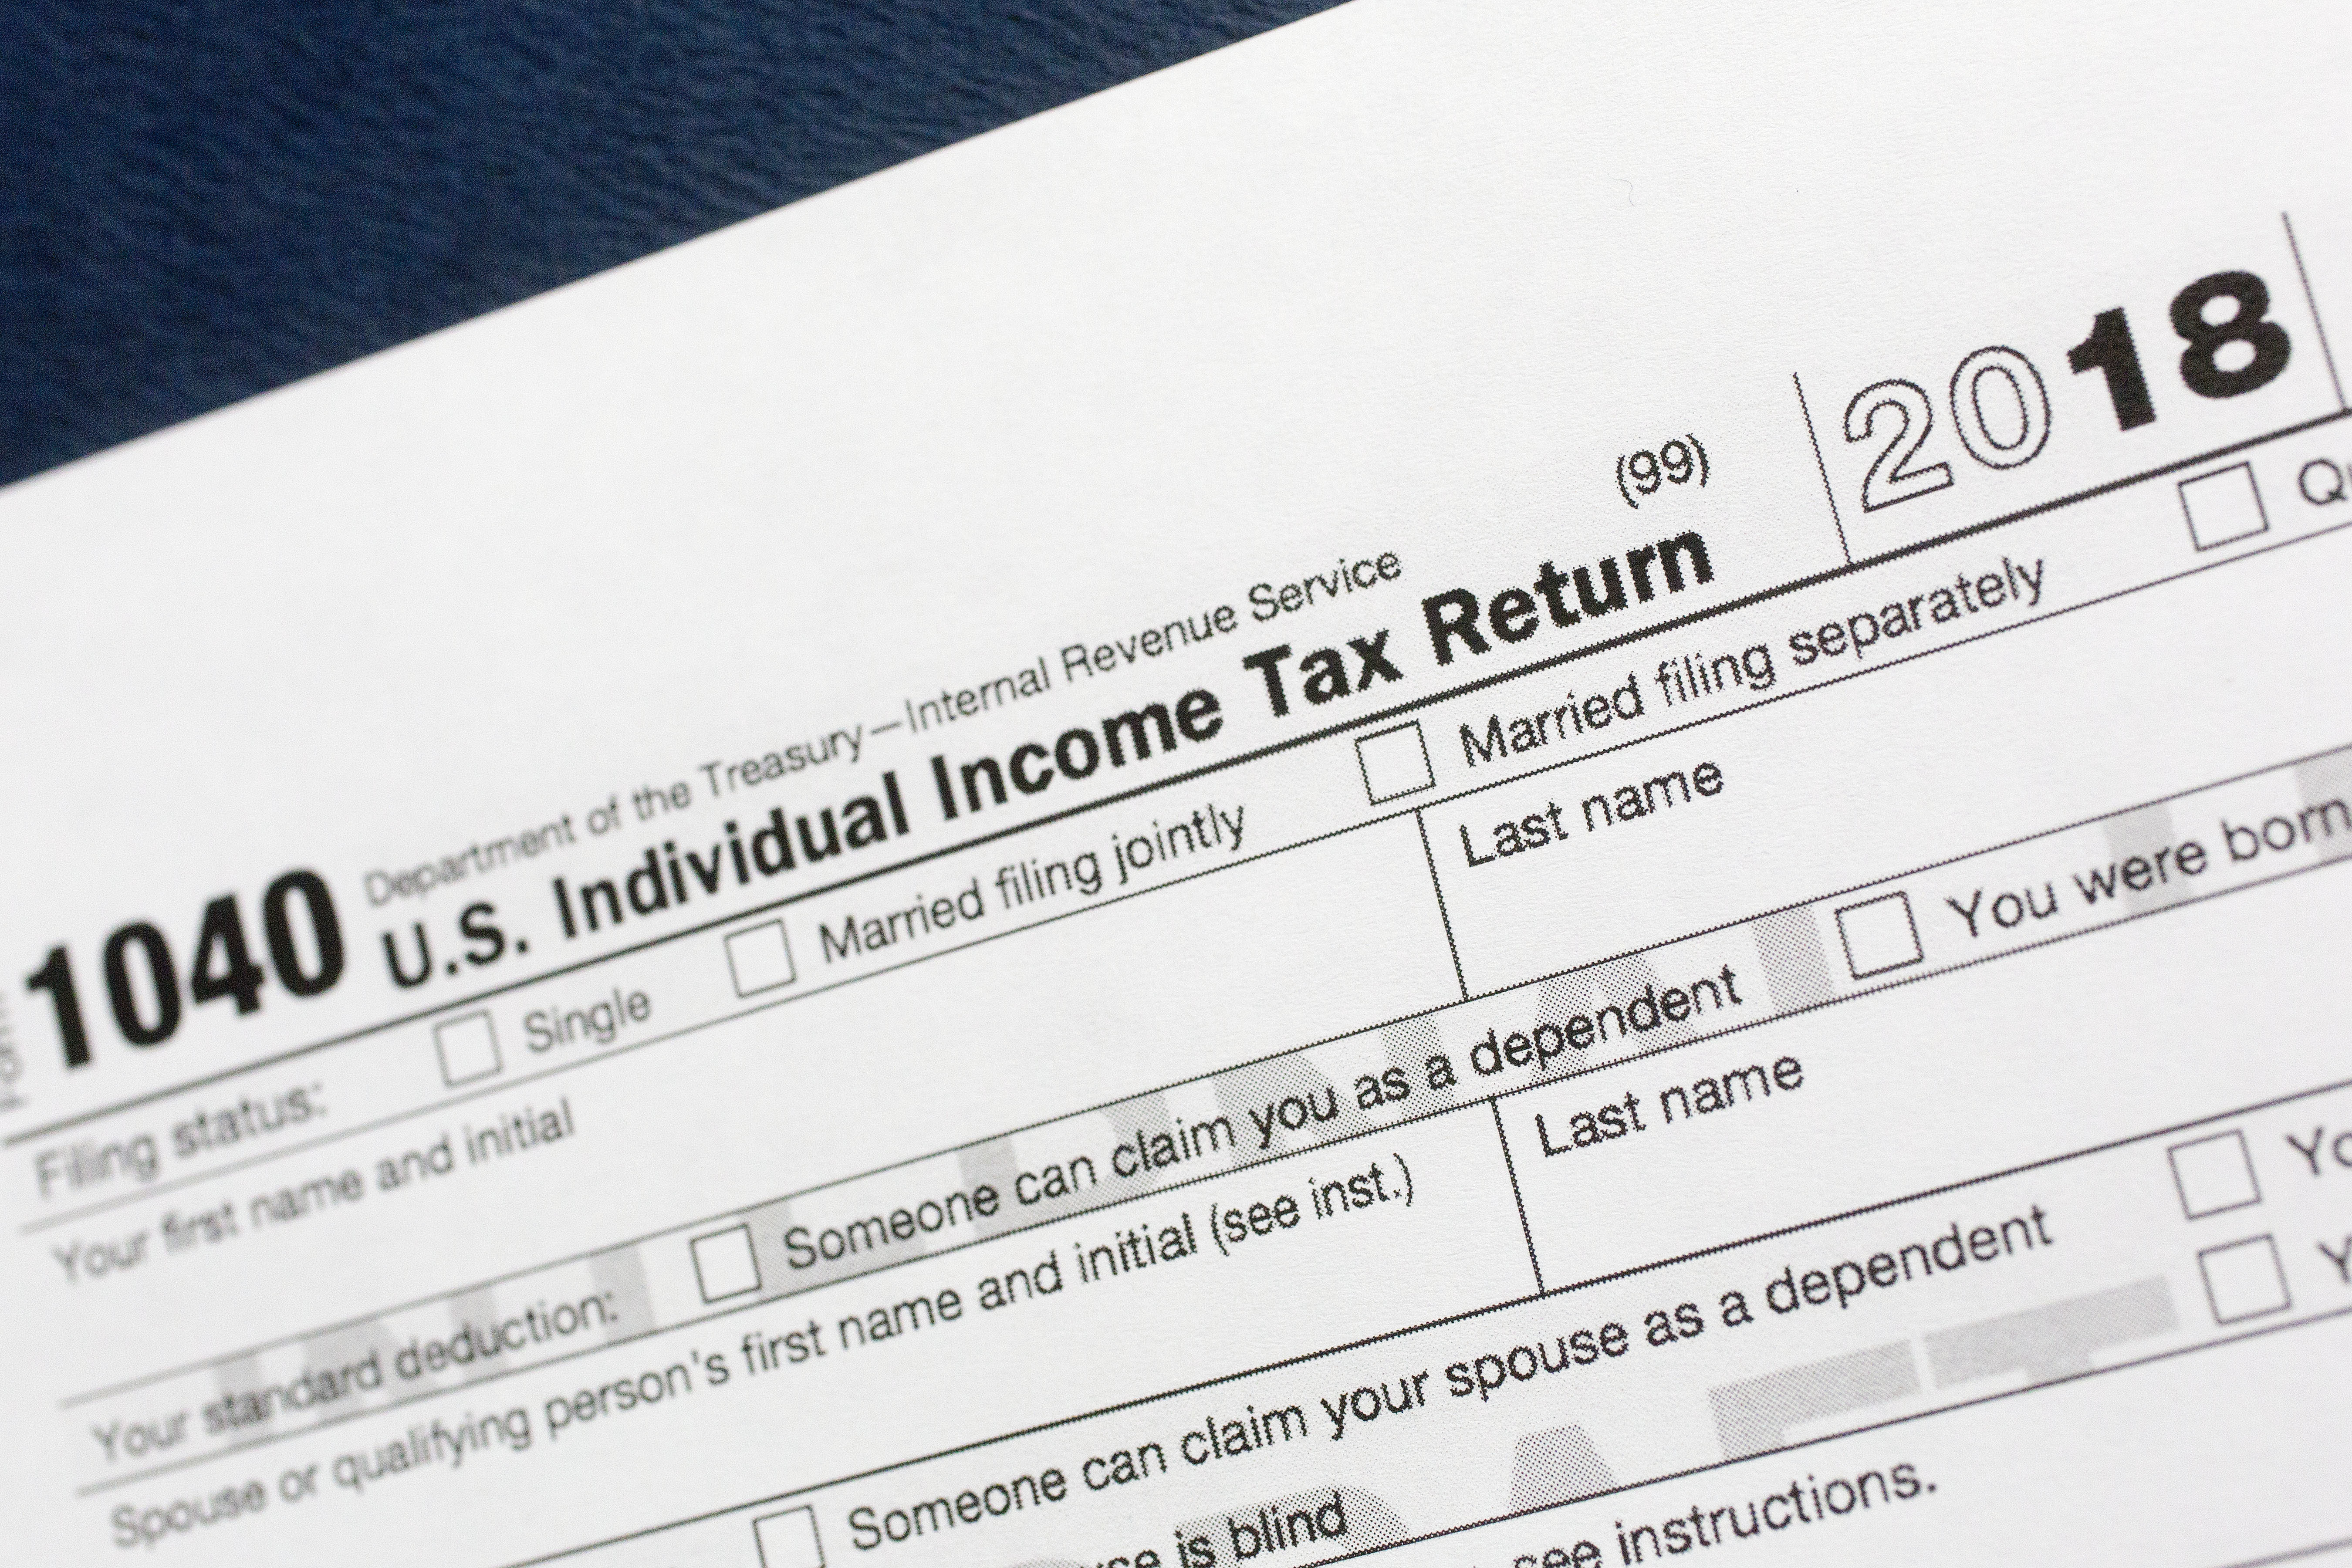 A portion of the 1040 U.S. individual income tax return form for 2018 is pictured in New York.